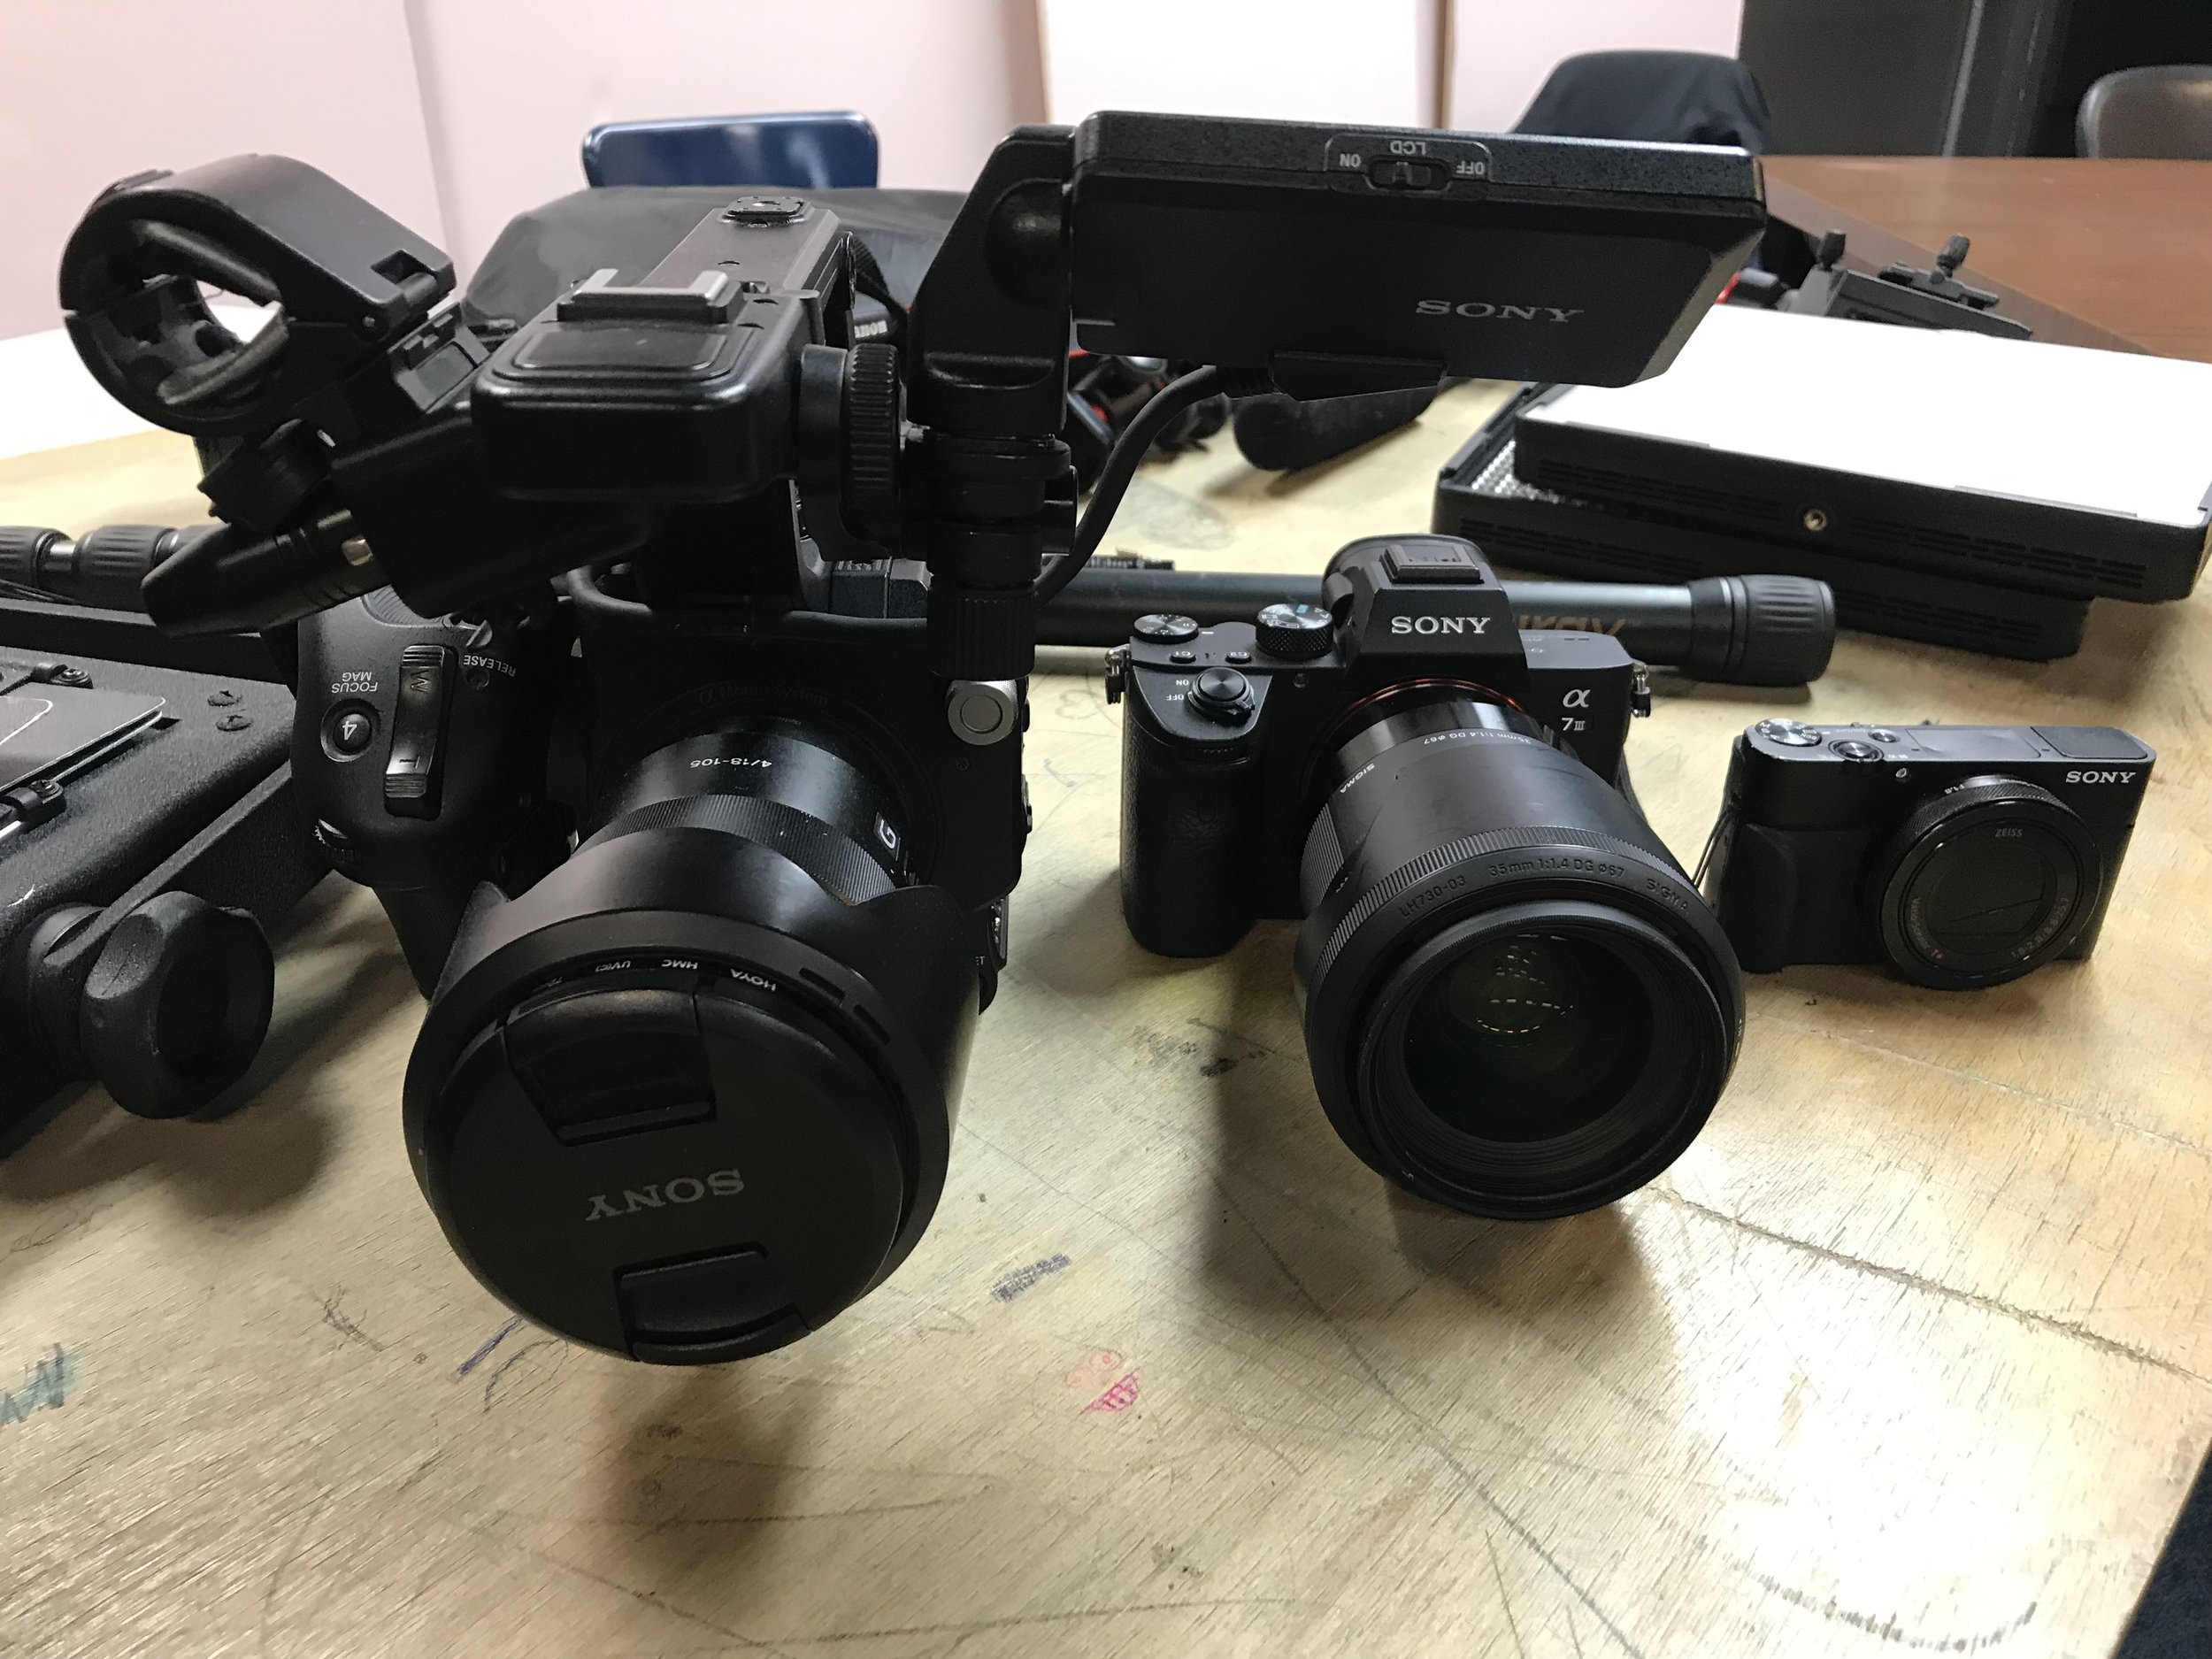 Patrick's three cameras that he uses for his own work